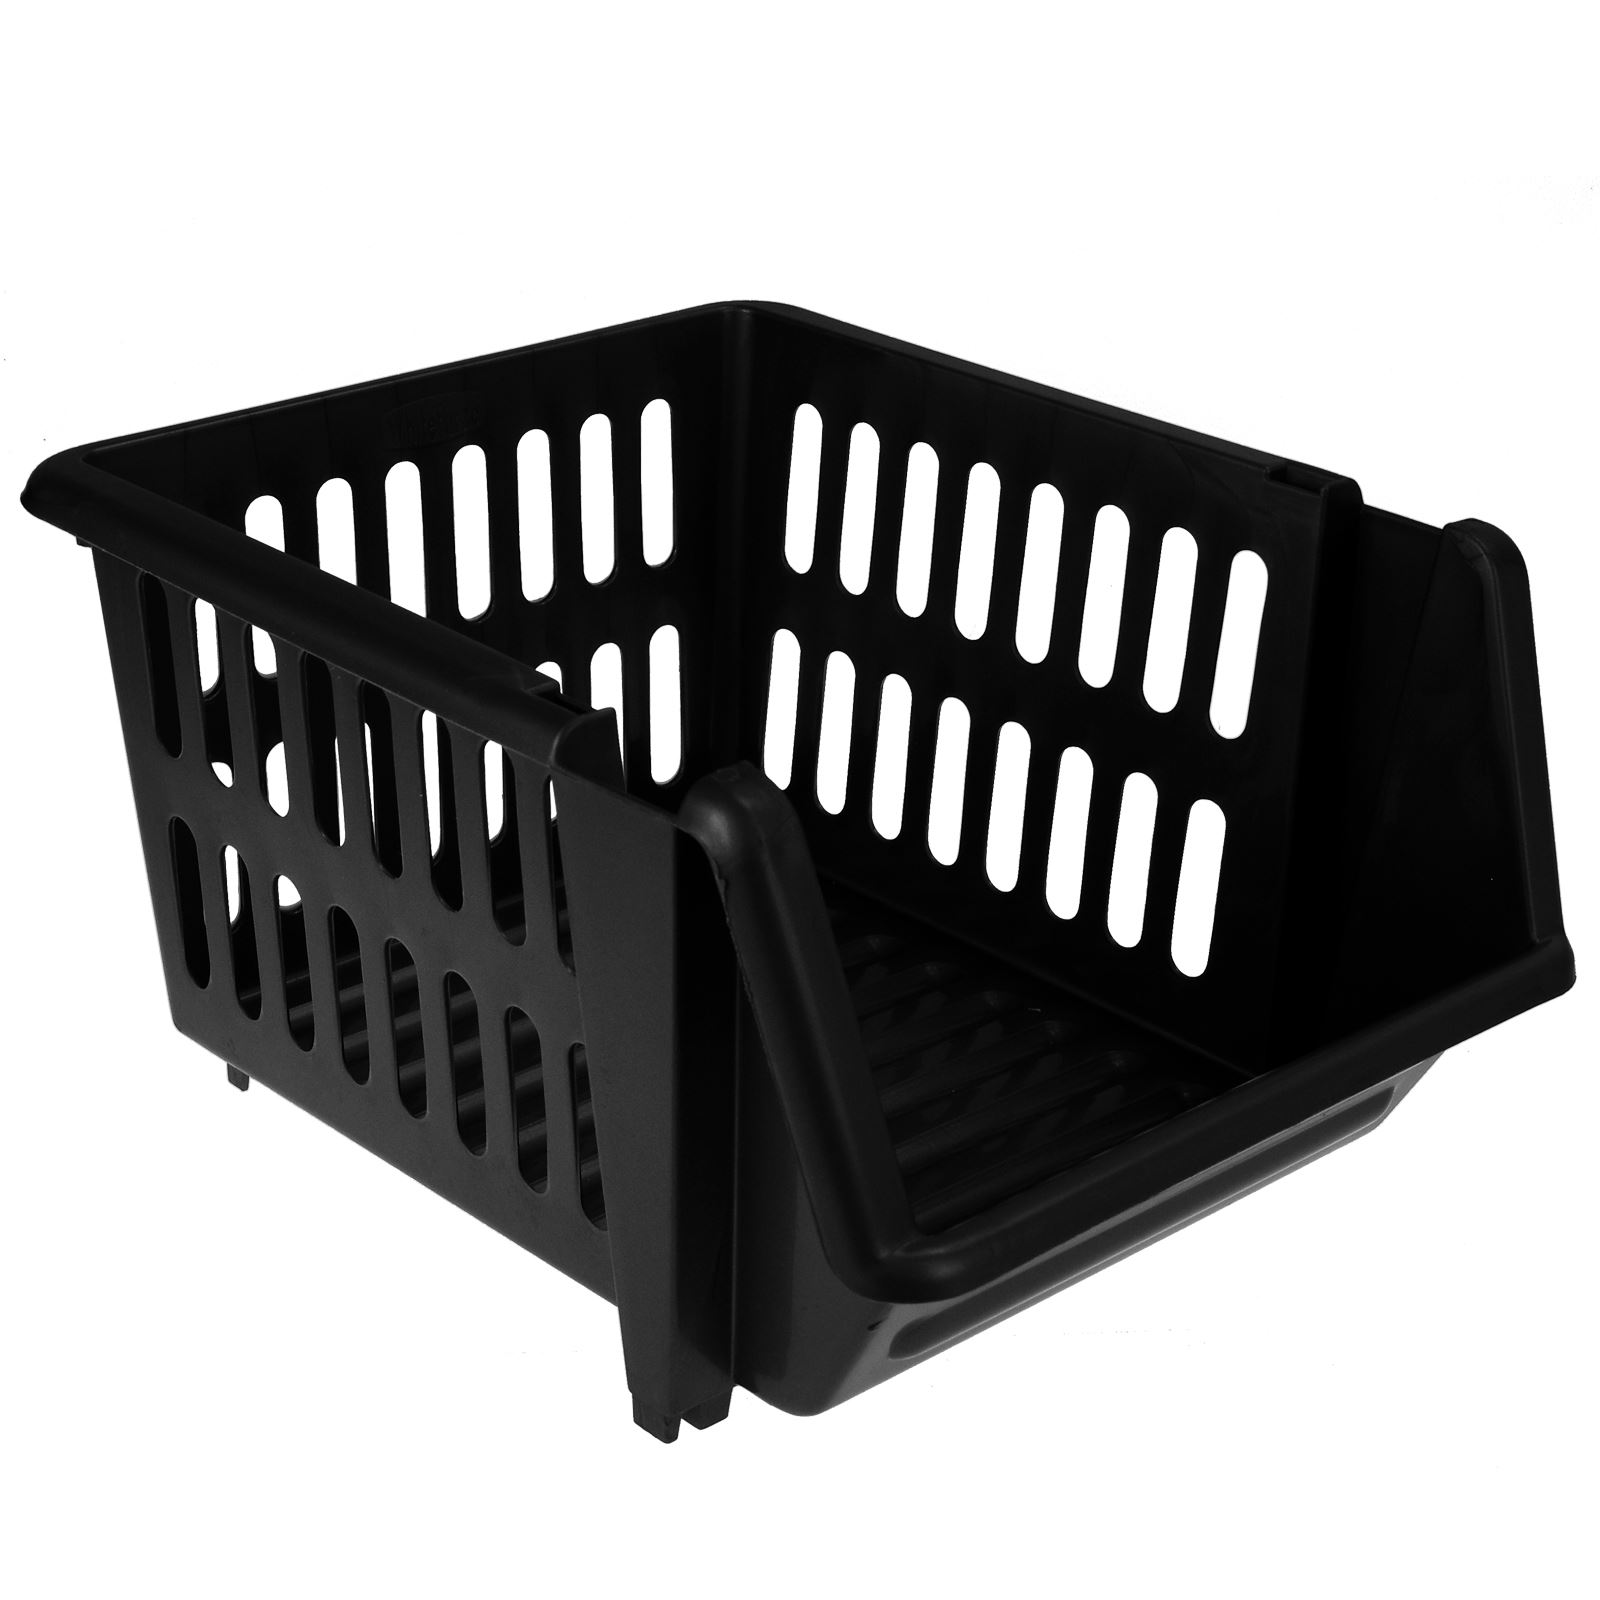 3-Tier-Plastic-Stacking-Basket-Set-Kitchen-Office-Storage-Rack-Stackable-Boxes thumbnail 3